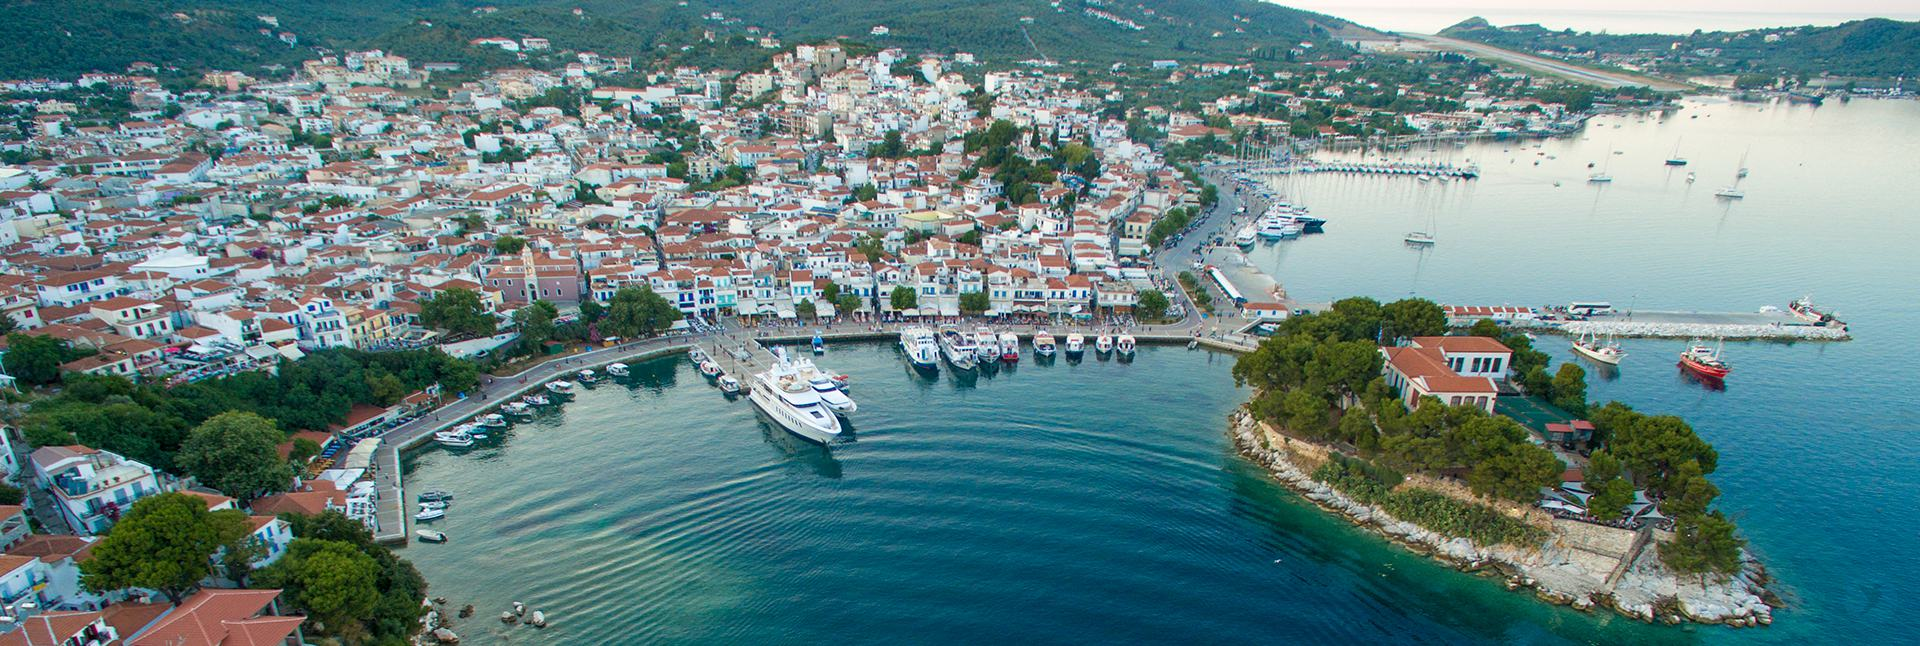 Skiathos Island - Old Port - Airport - Bourtzi - Bourtzi Boutique Hotel